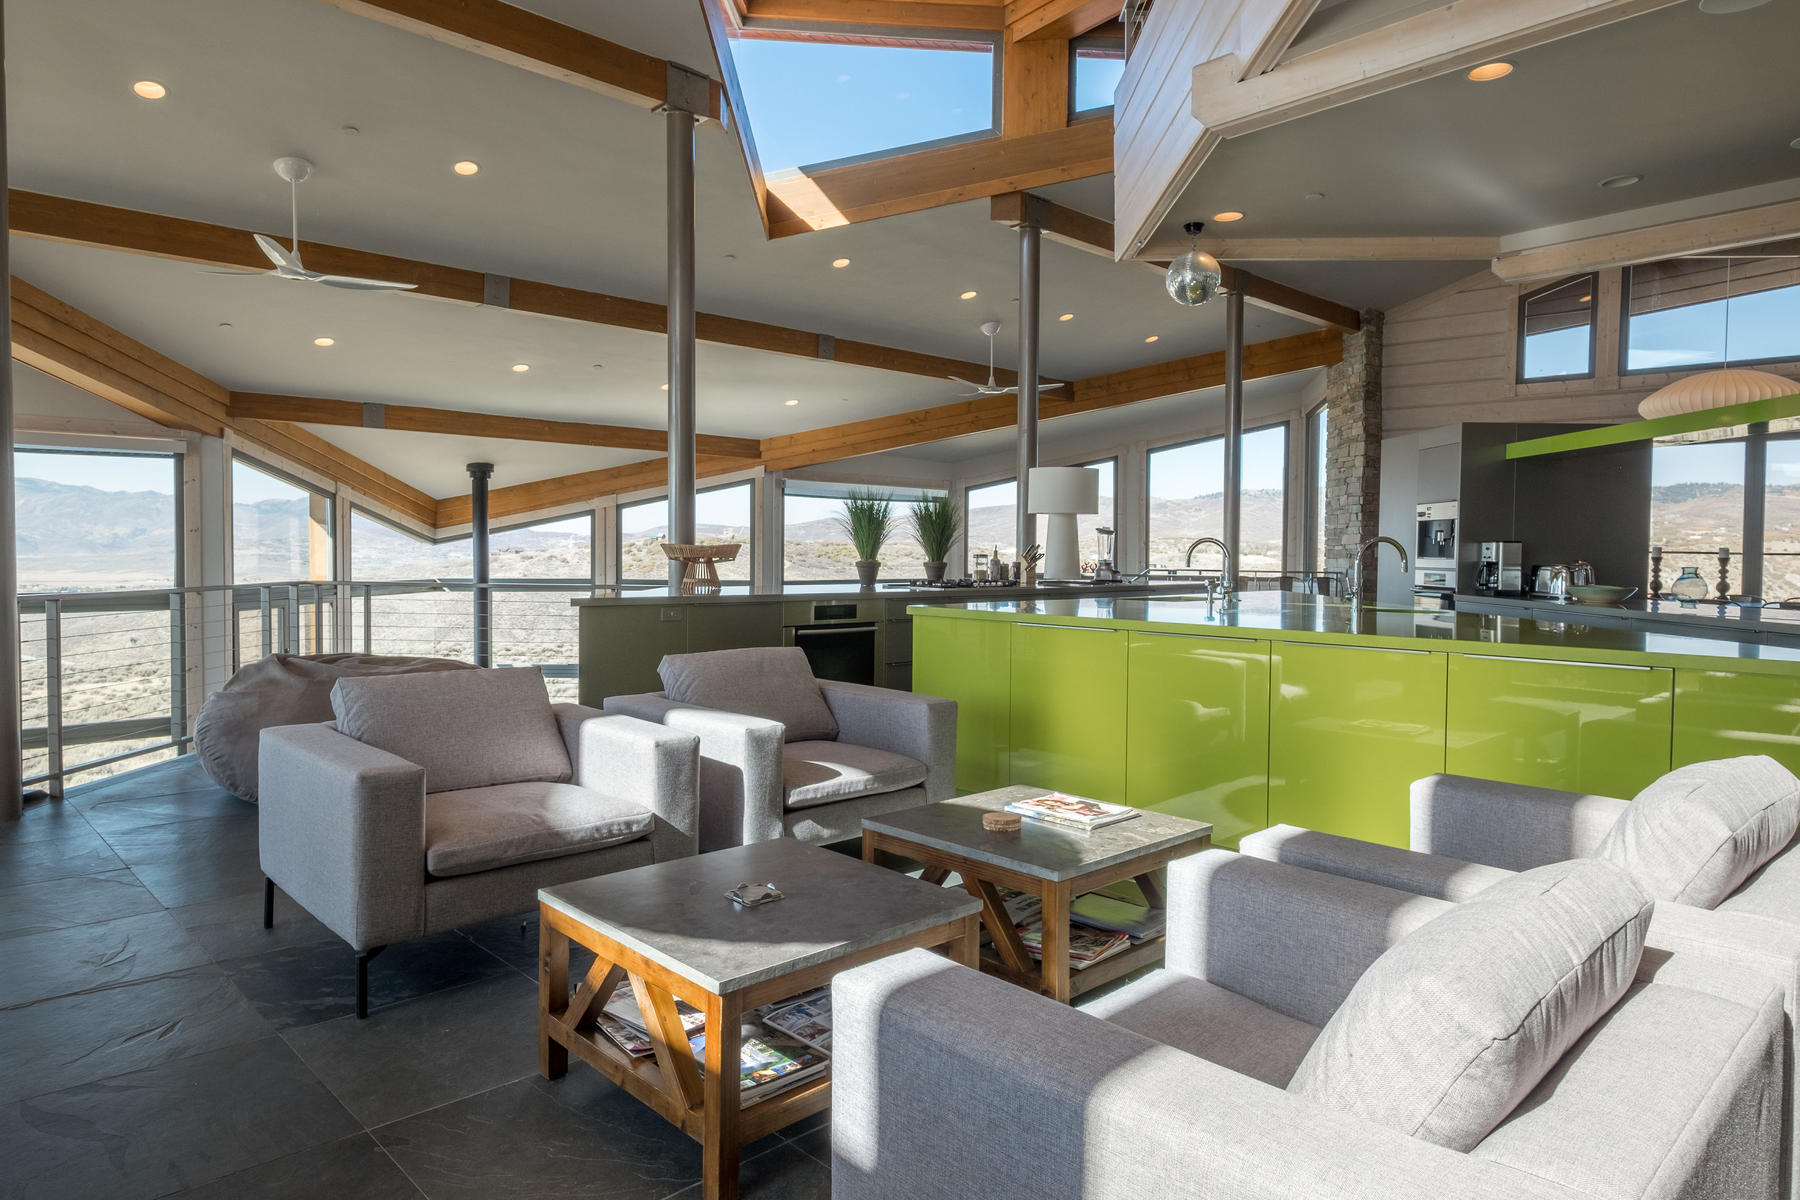 Additional photo for property listing at Timeless Modern Contemporary Home in Promontory 7871 N West Hills Trail Lot 58 Park City, Utah 84098 United States